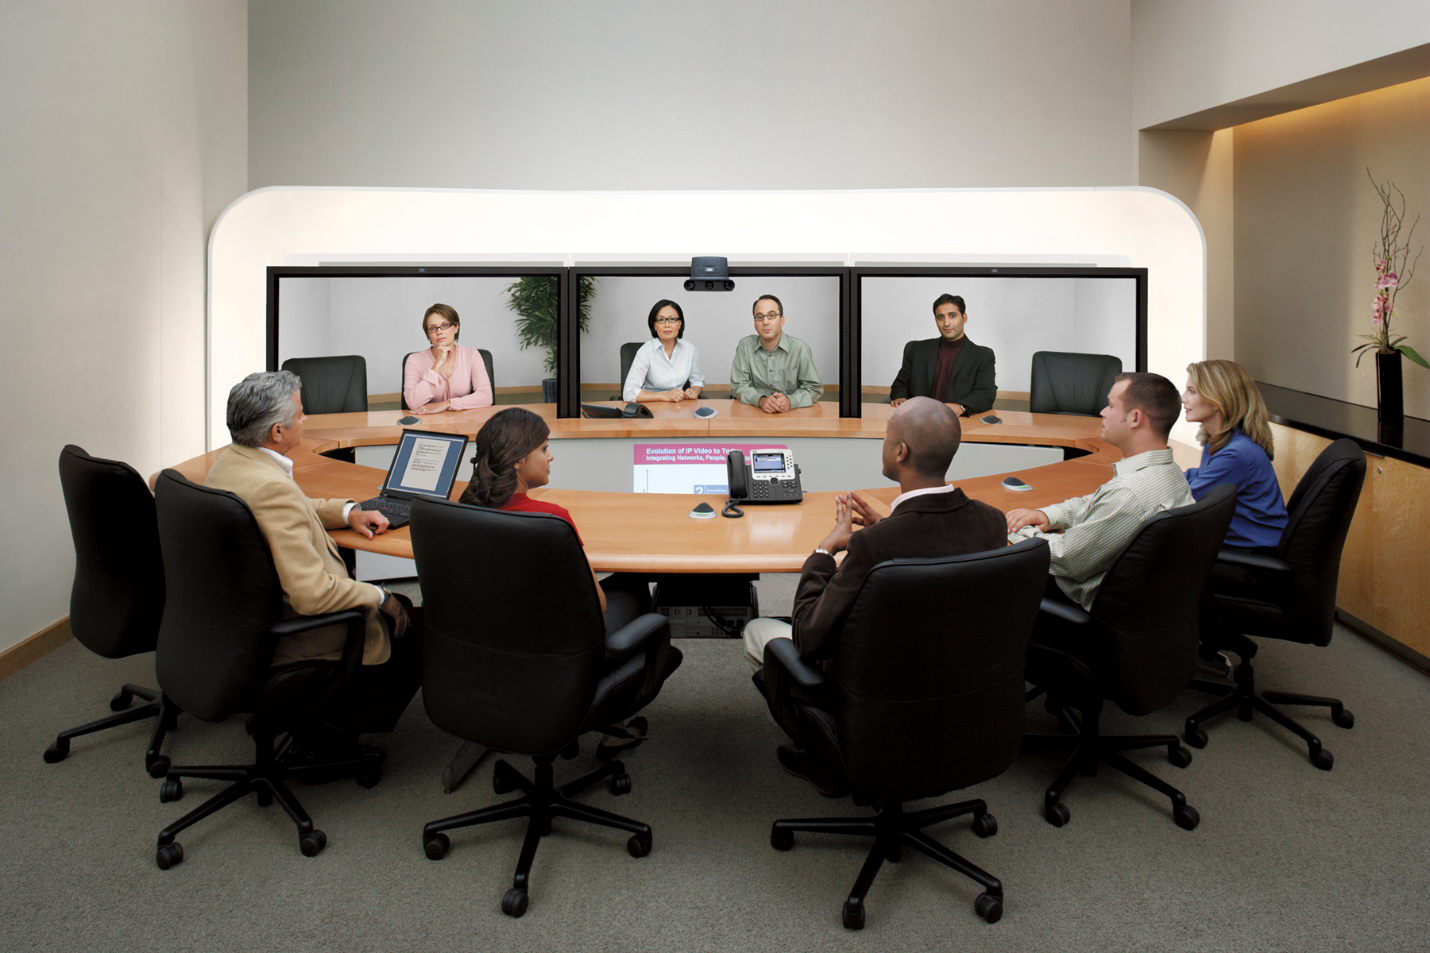 an introduction to the desktop videoconferencing Video conferencing is becoming more important as a business tool as people work from more locations use video conferencing to bring people together, face-to-face, no matter where they are or what device they use collaboration solutions from cisco provide video conferencing on any device.